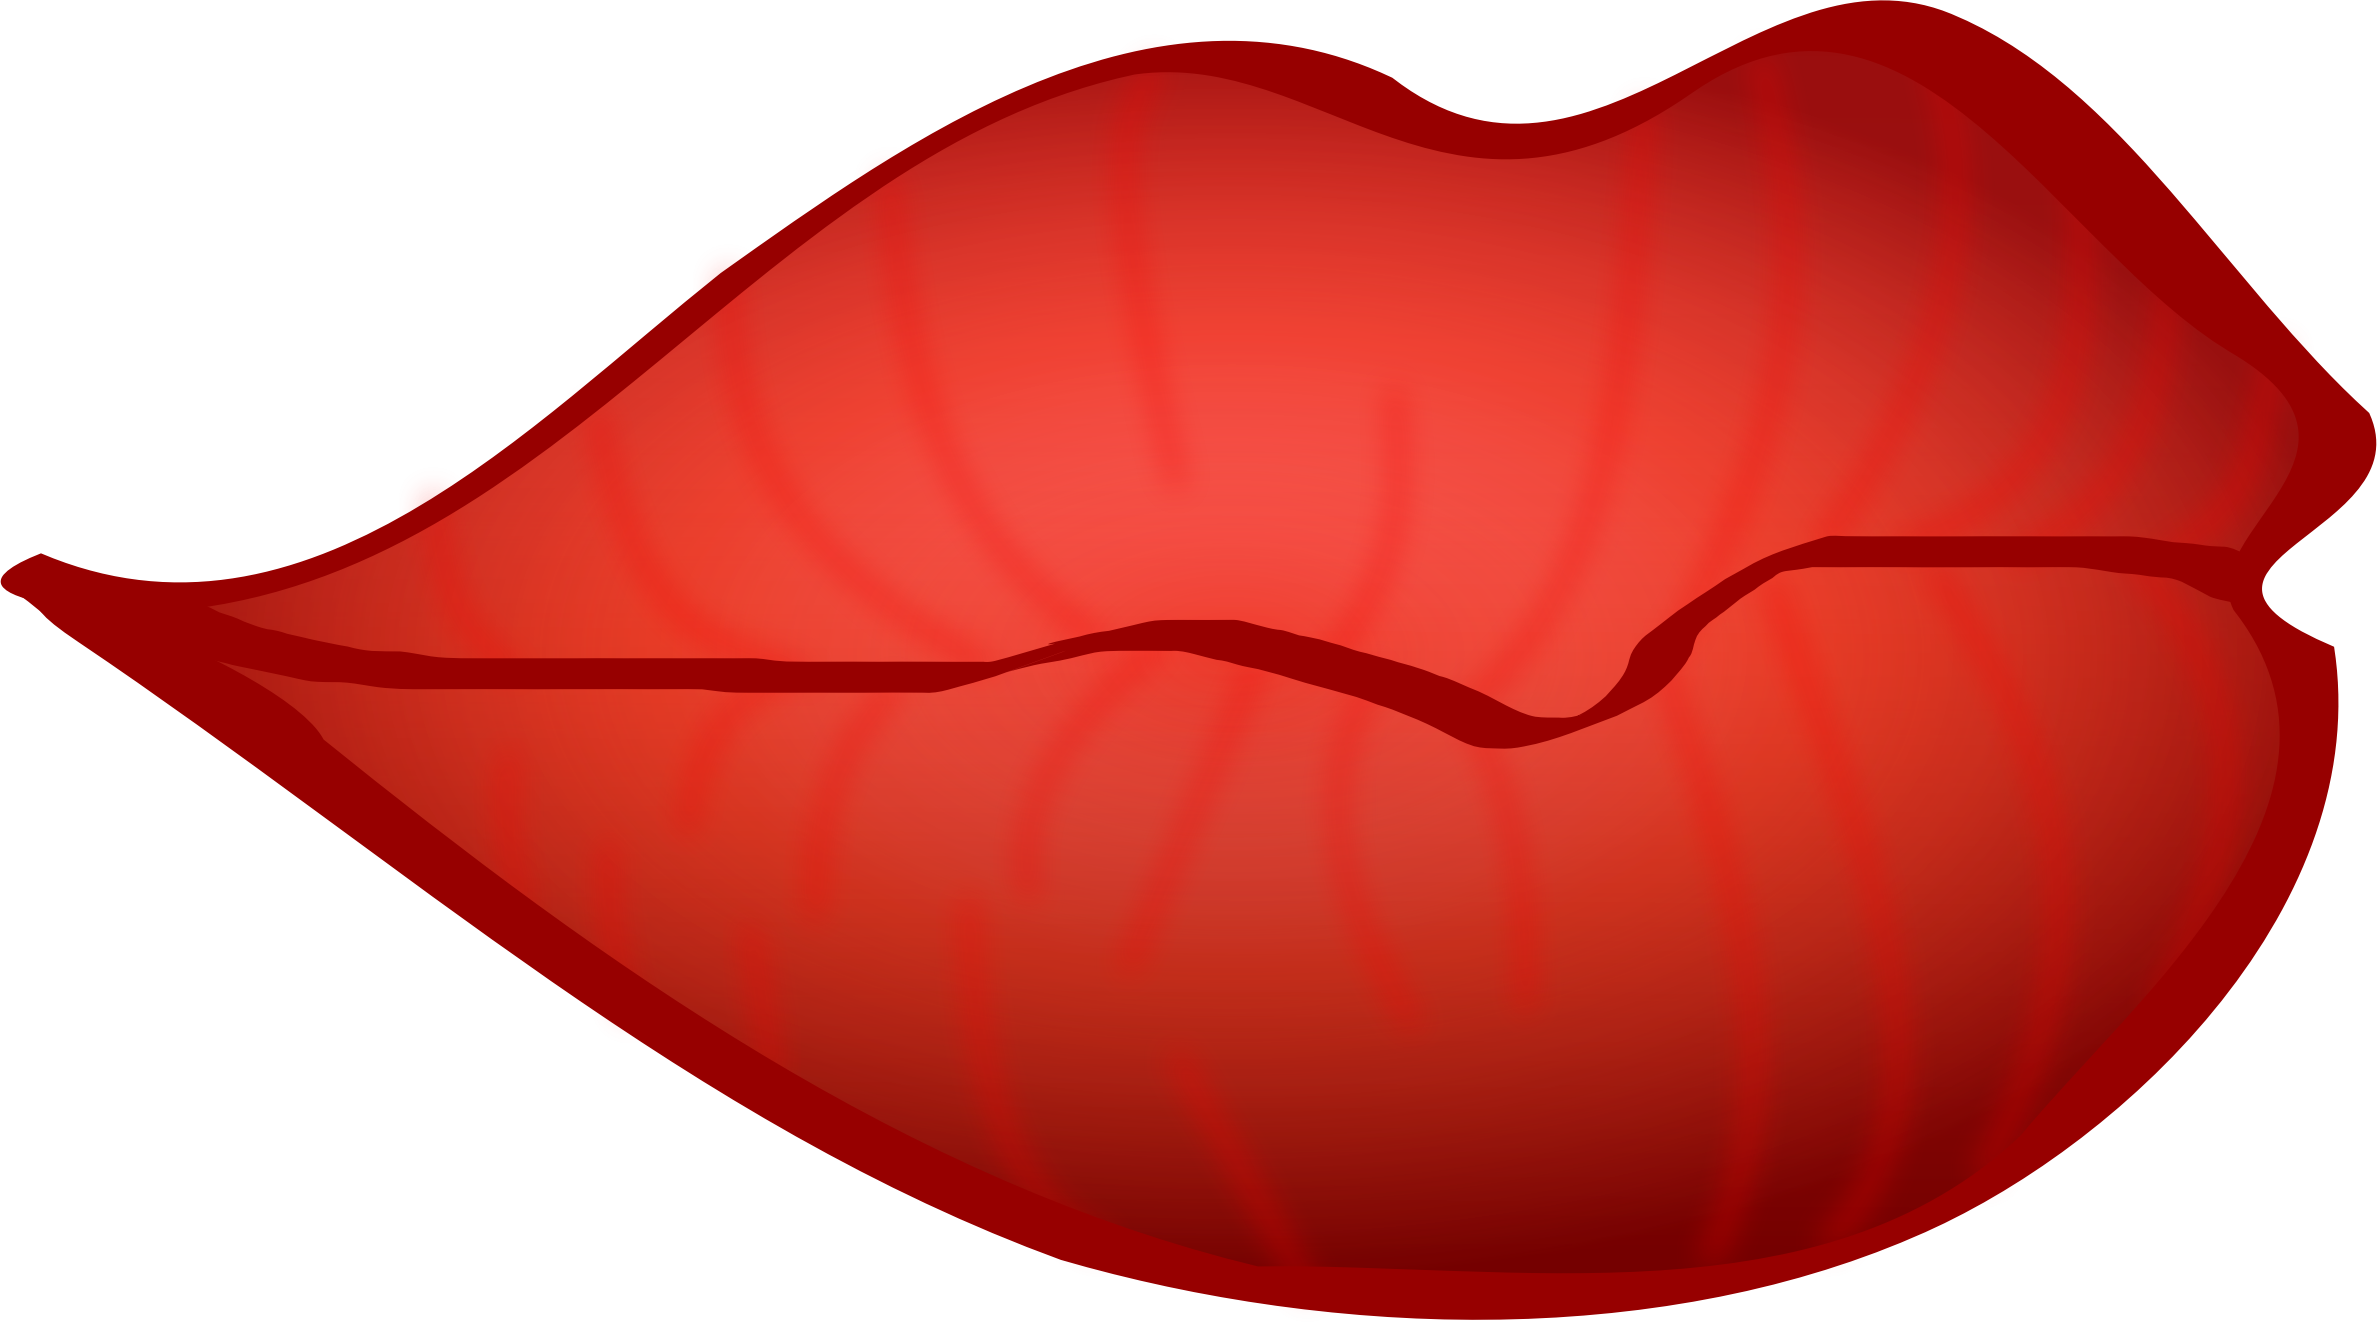 Lips clipart side mouth. Free big red download